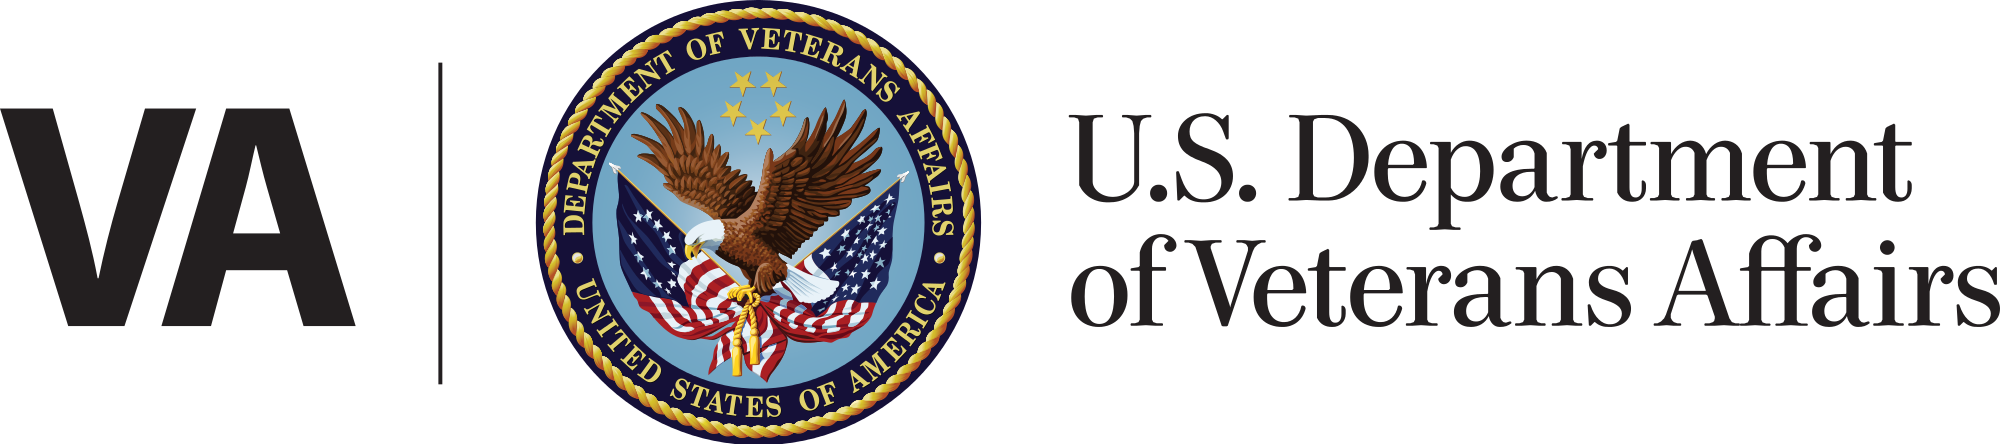 US VA Logo with text